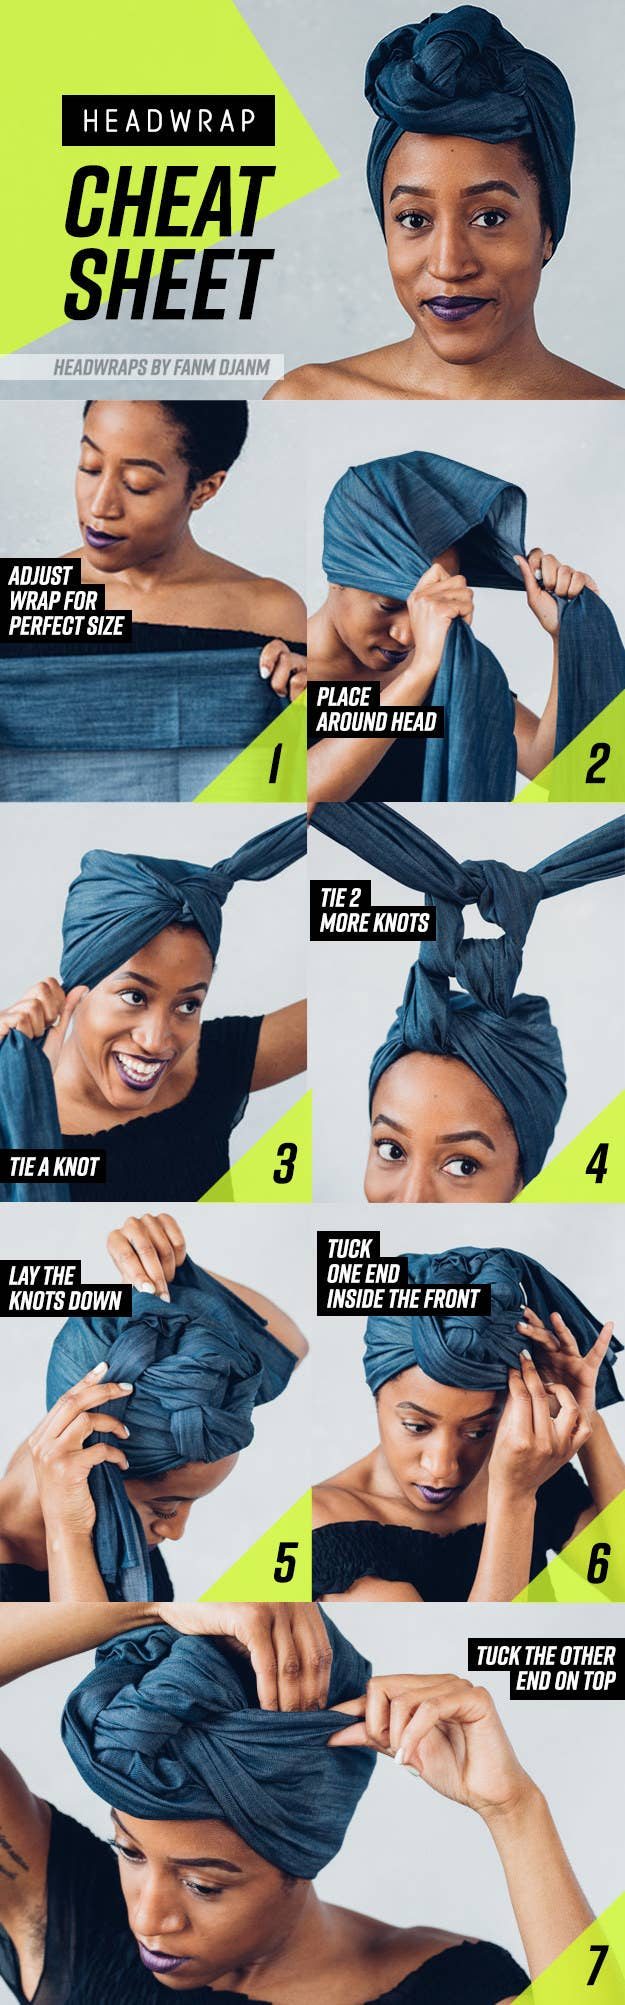 8 head wrap cheat sheets if you dont know how to tie them patrice here one of the biggest hair chameleons youll ever meet fly head wrap styles help keep my switch up game strong ccuart Image collections